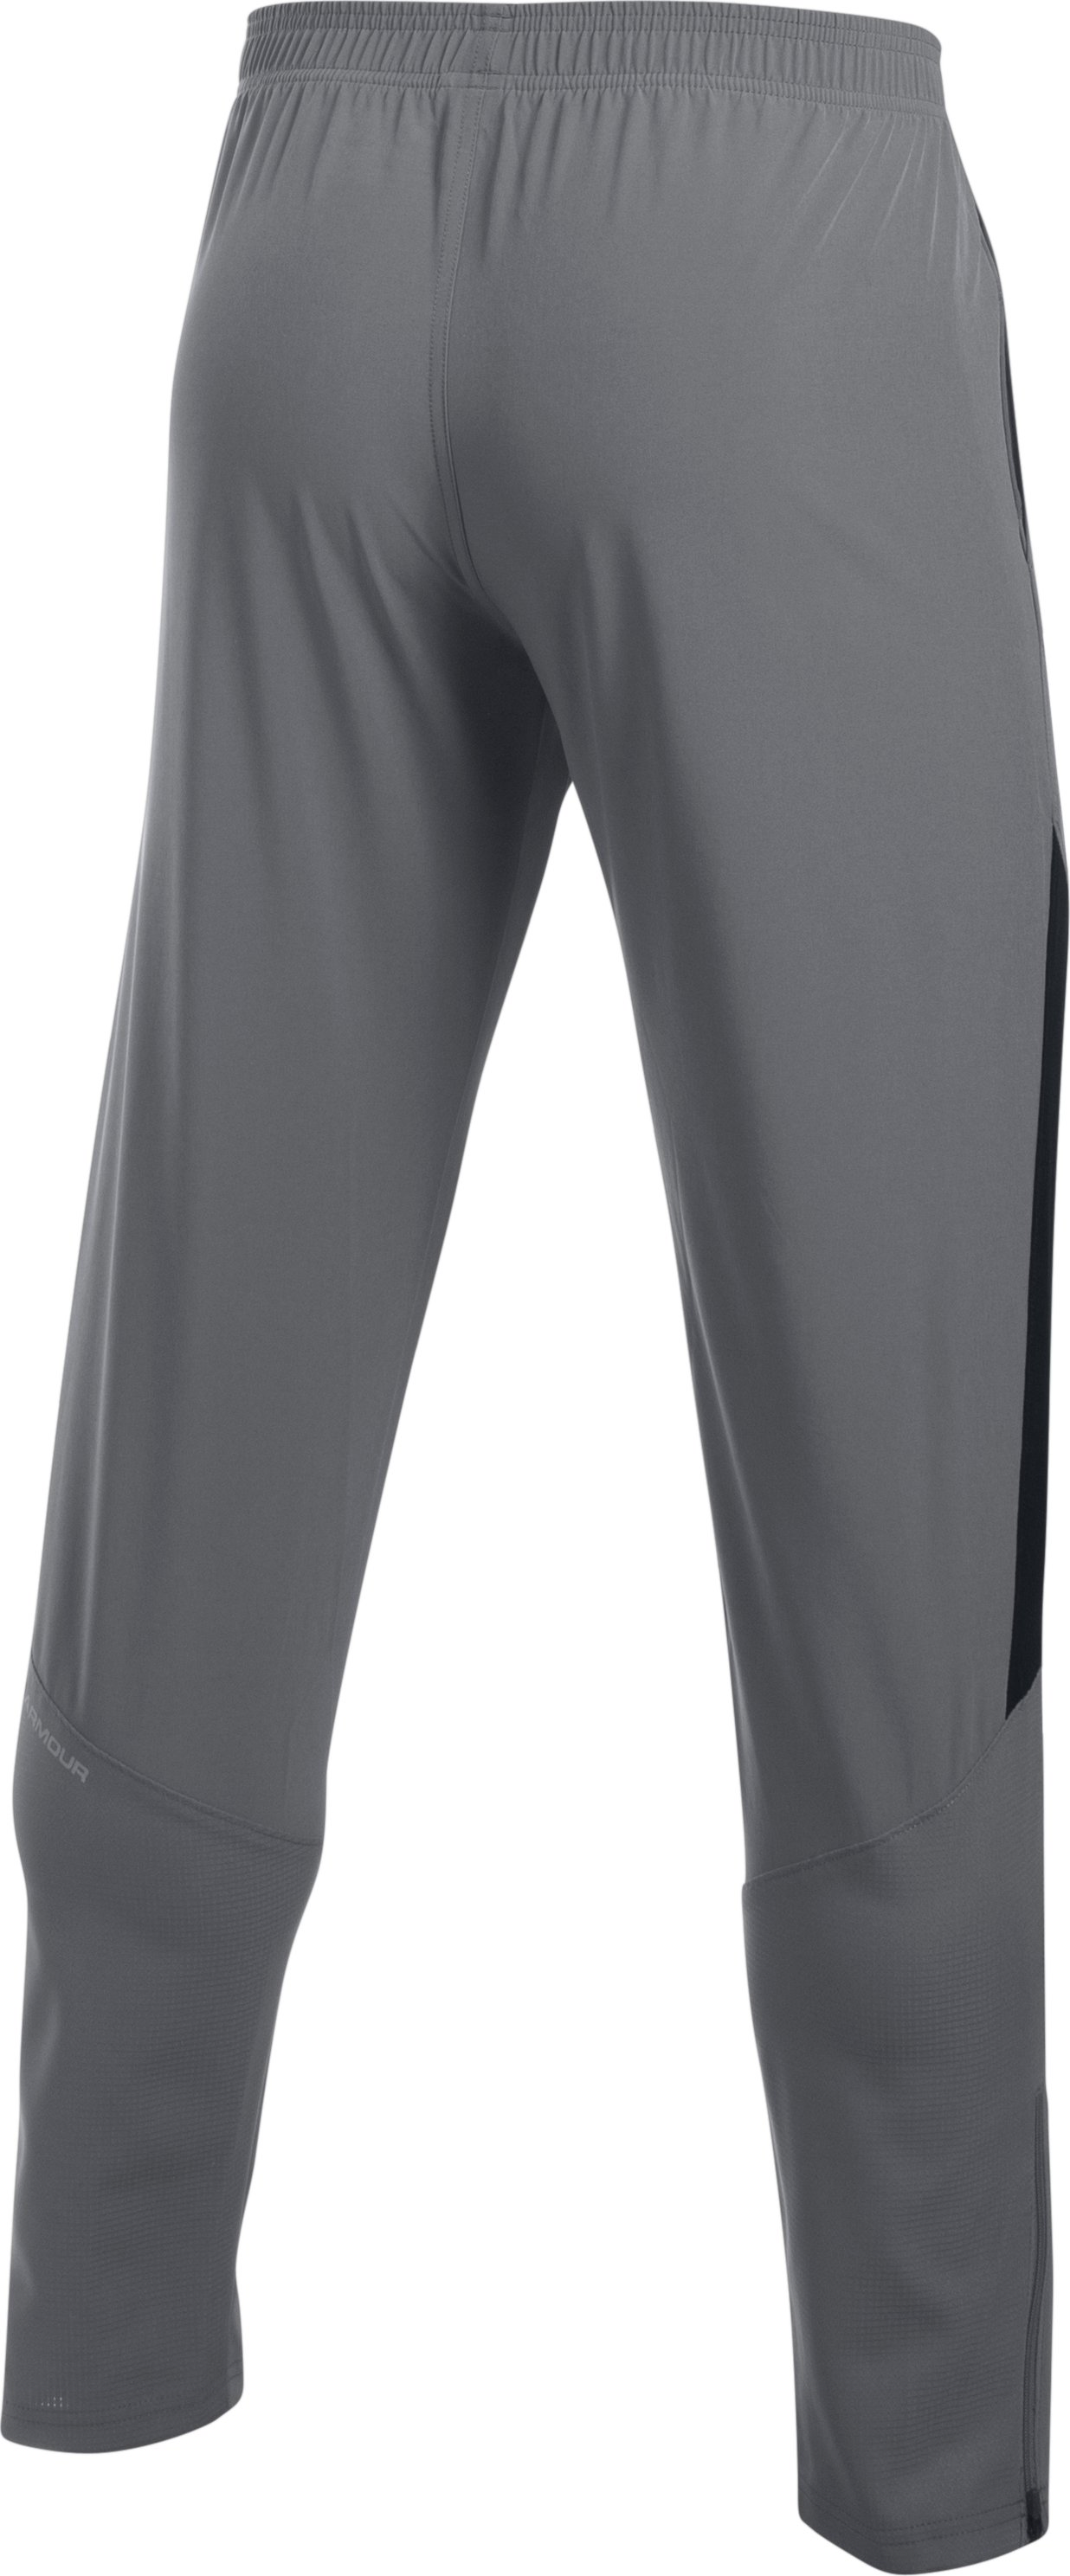 Men's UA No Breaks Stretch-Woven Run Pants, Graphite